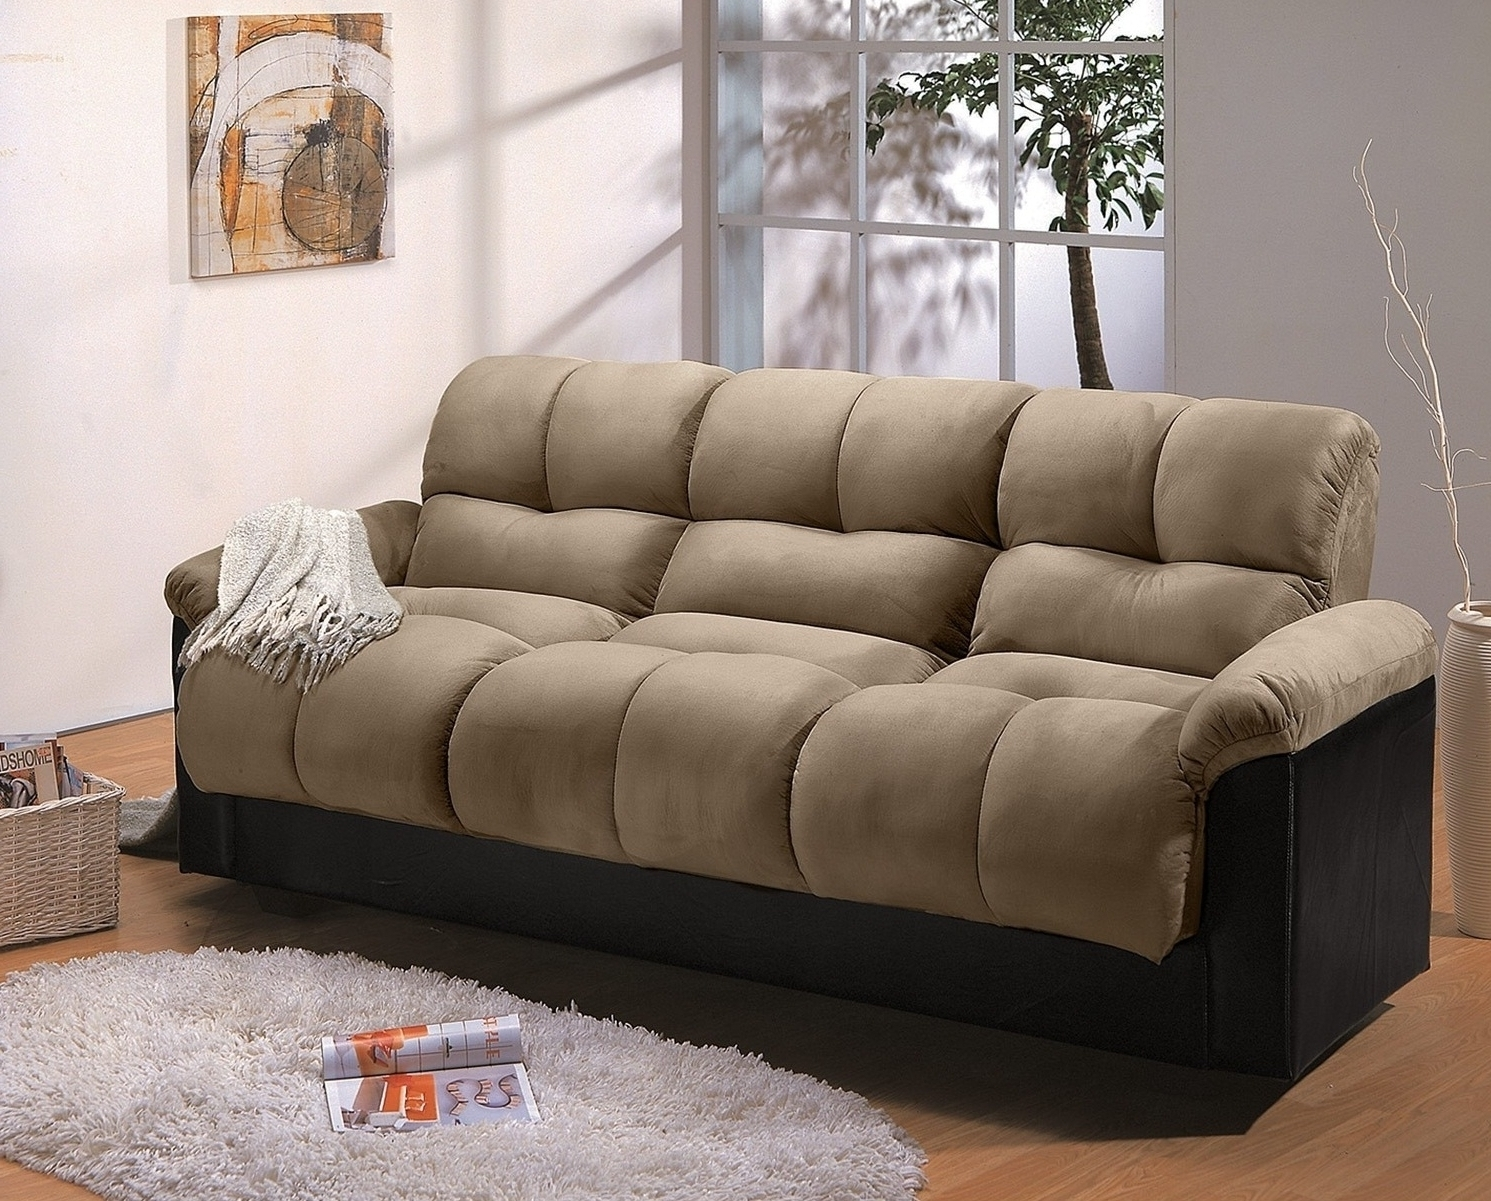 Lazy Boy Sectional Sofa Grand Home Furnishings — The Home Redesign Inside Most Recent Grand Furniture Sectional Sofas (View 11 of 15)